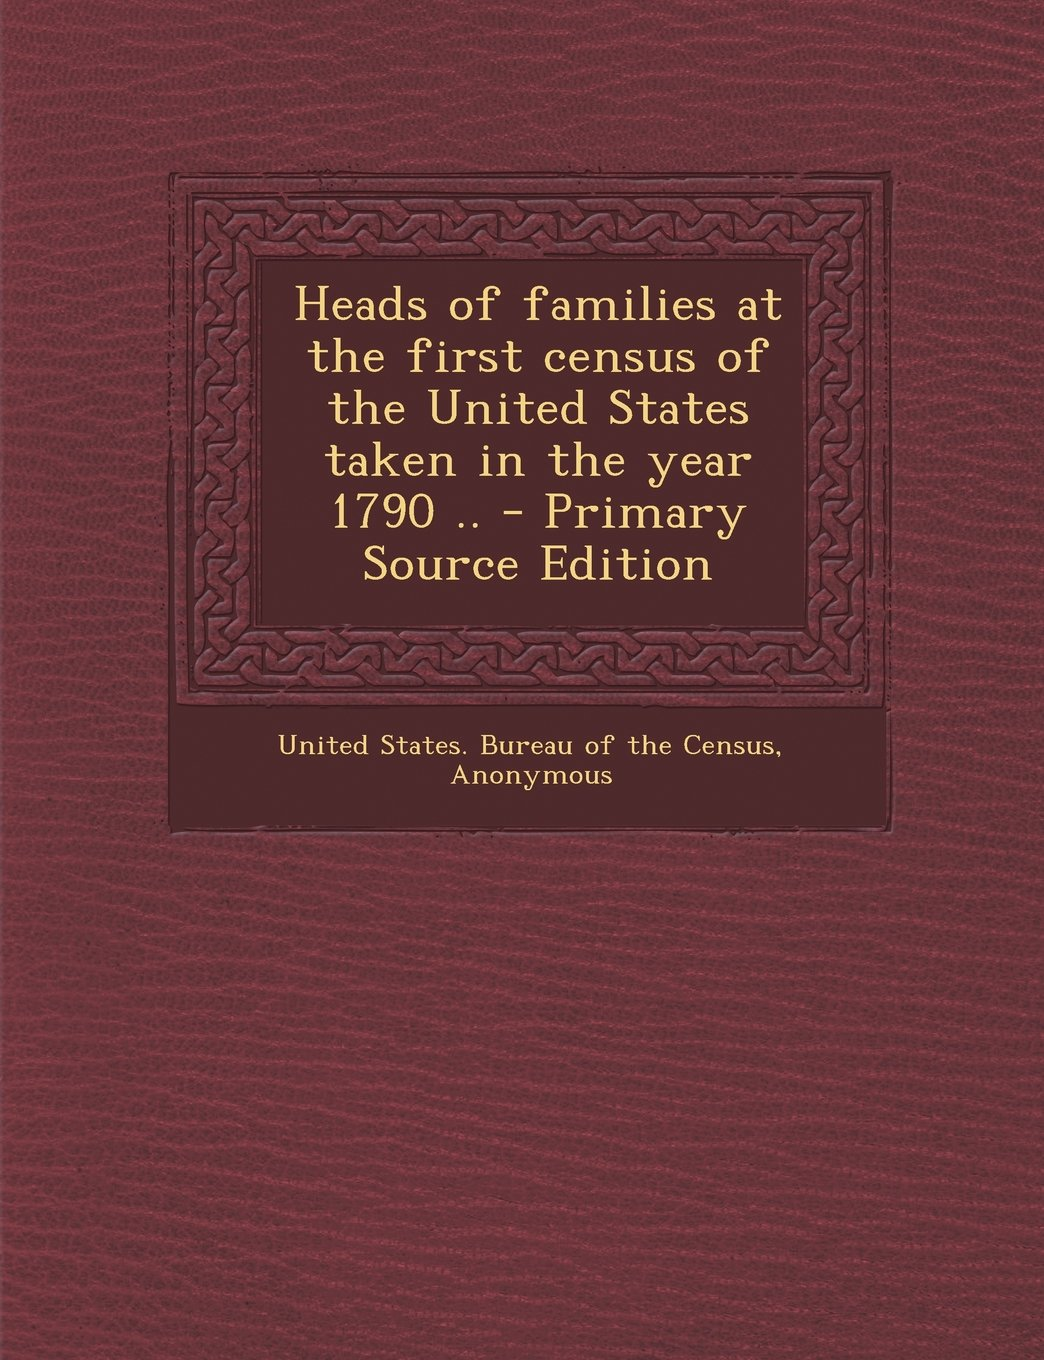 Download Heads of Families at the First Census of the United States Taken in the Year 1790 .. - Primary Source Edition pdf epub